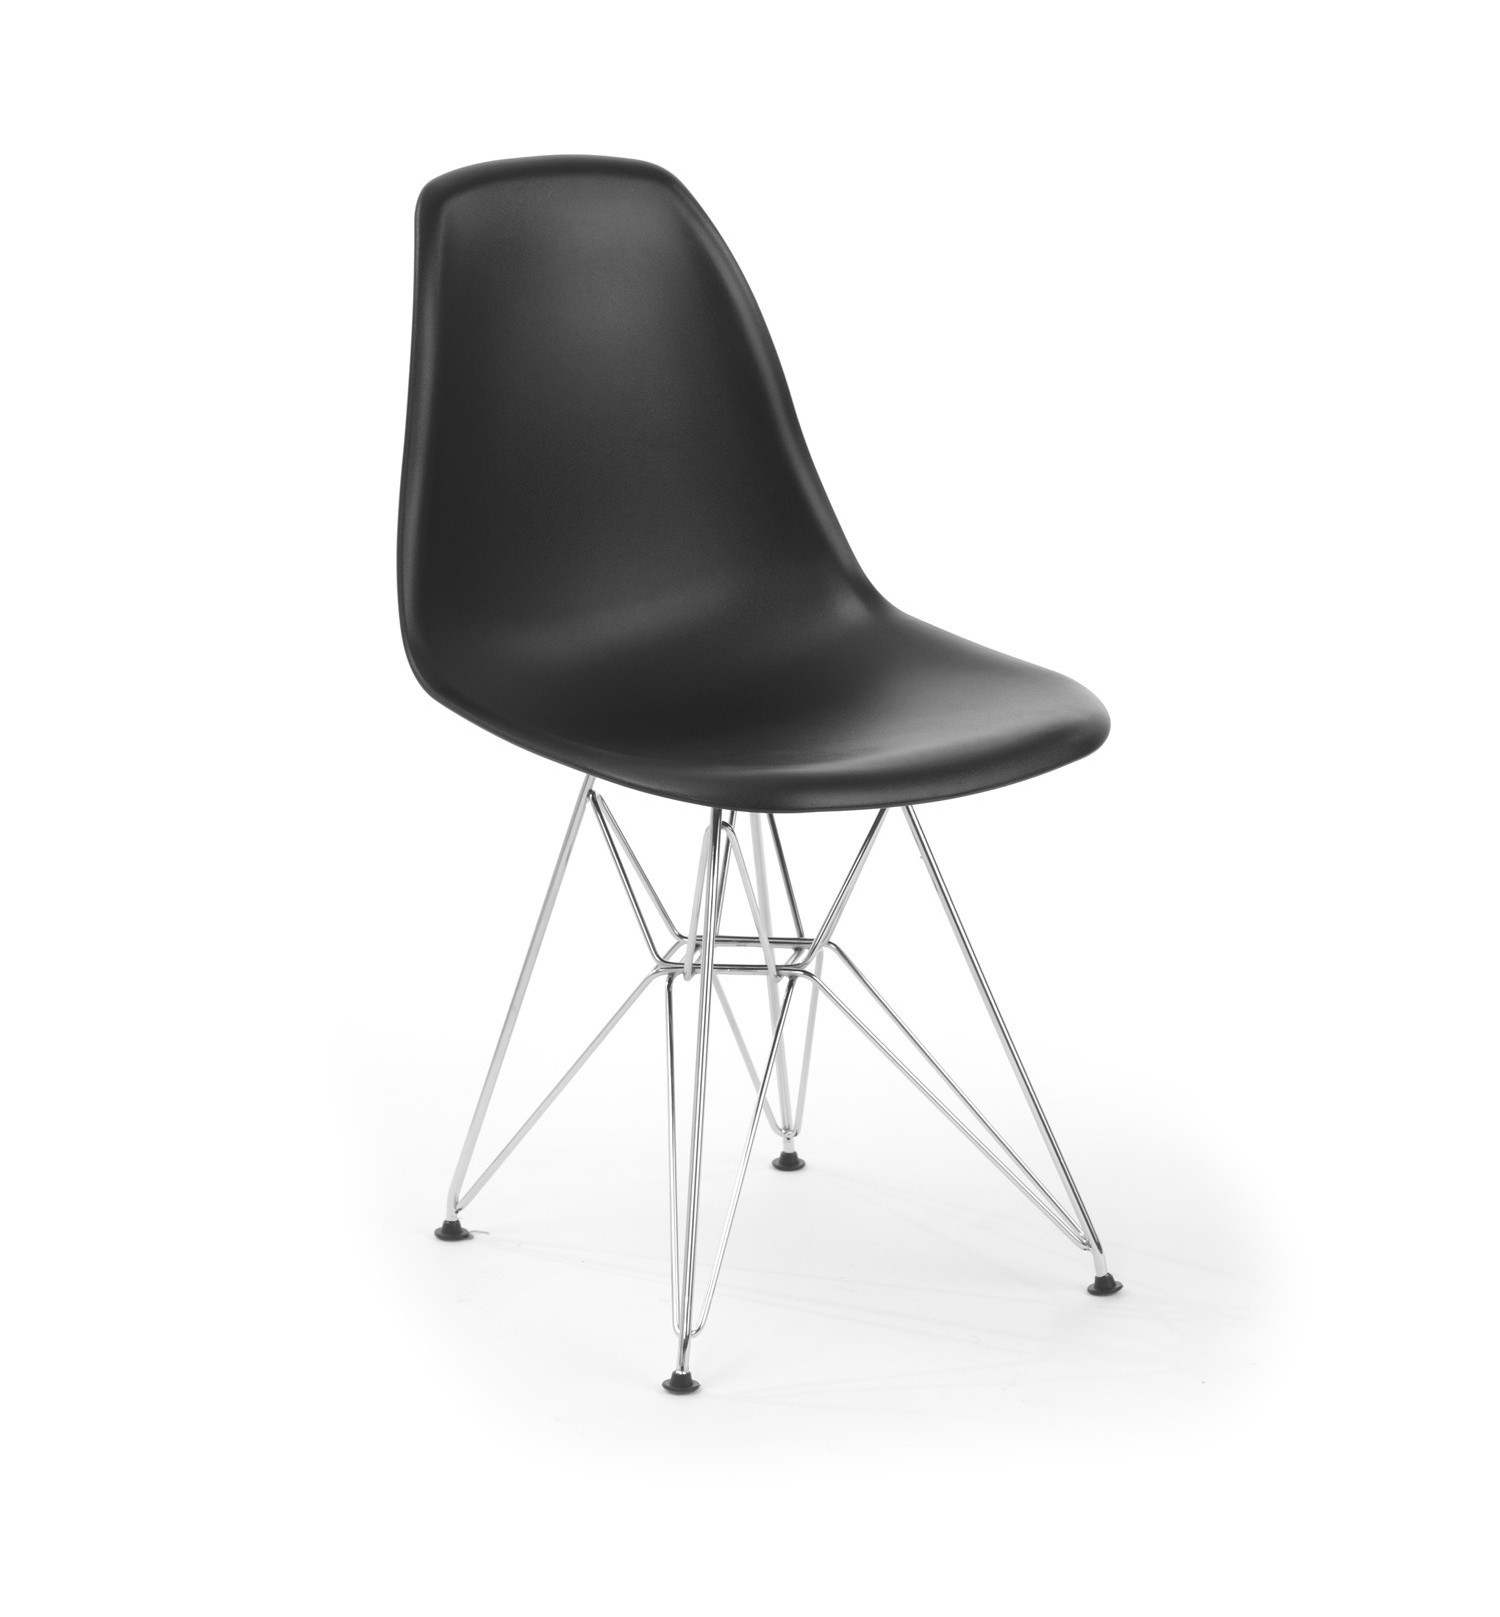 Silla eames dsr black rozen for Muebles eames